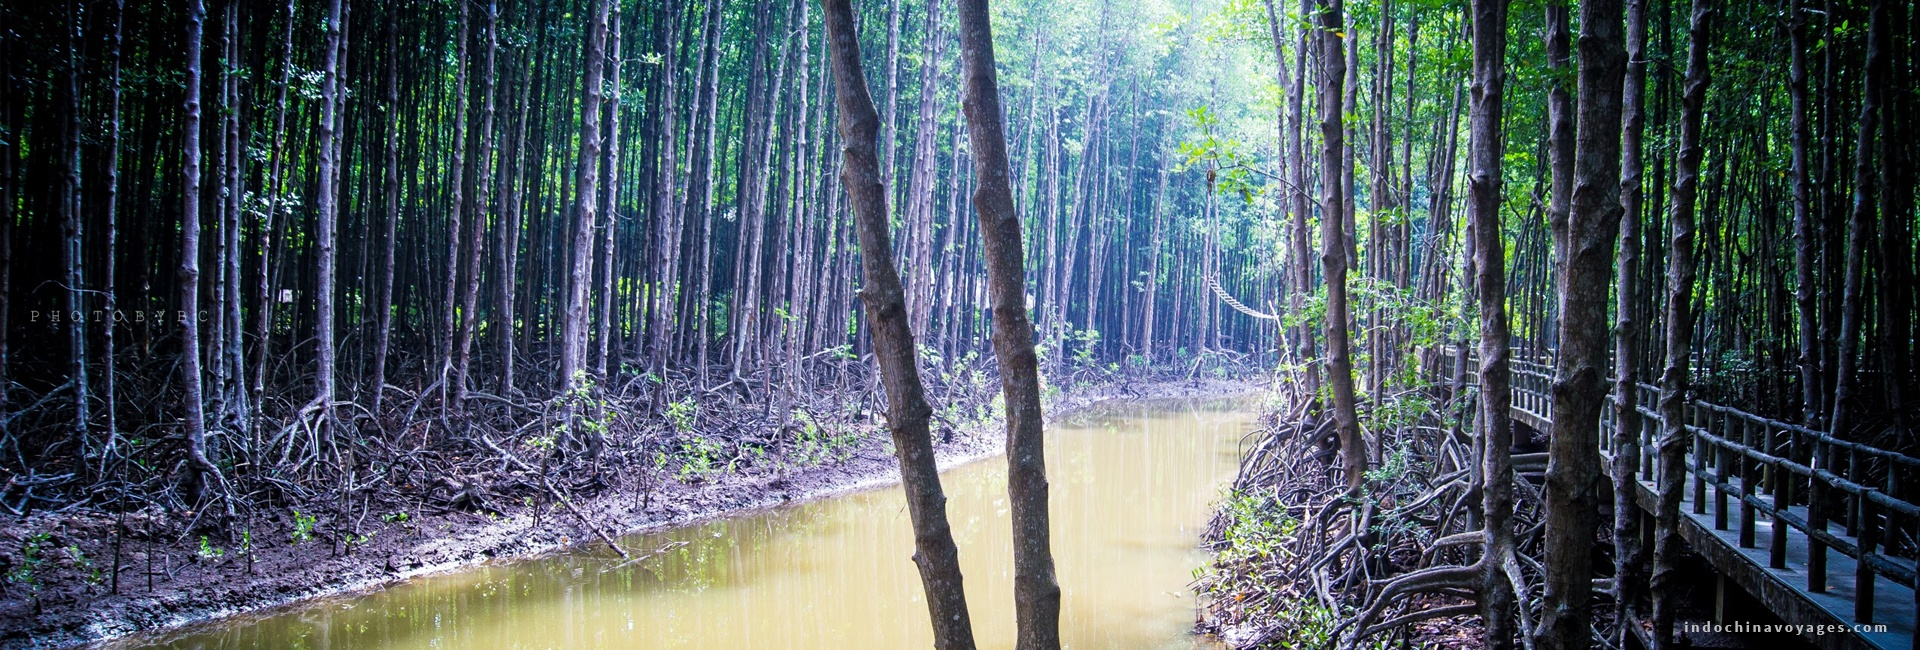 Can Gio Mangrove Forest Discover